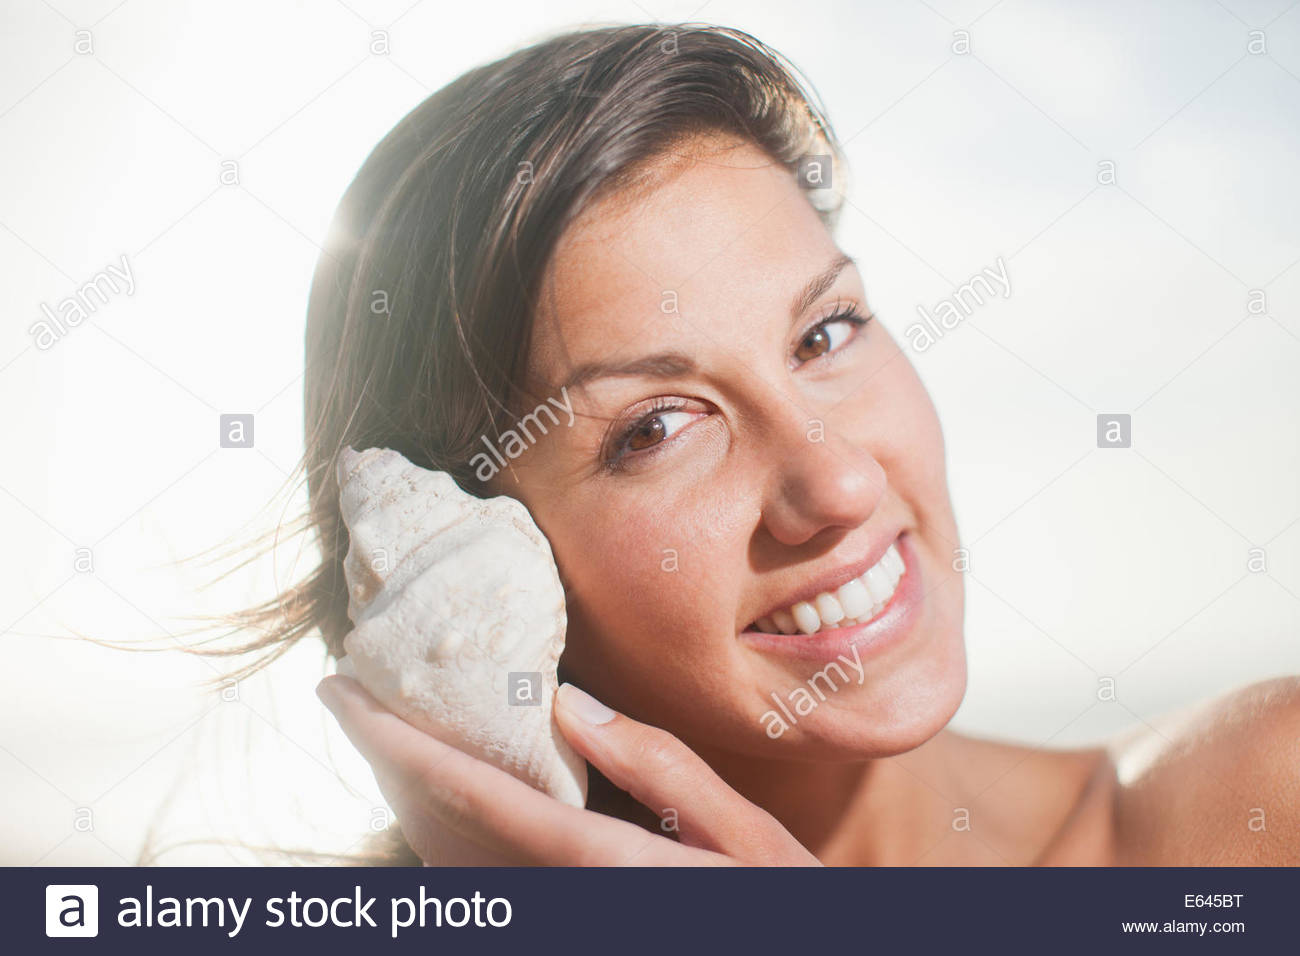 Close up of woman listening to seashell Photo Stock